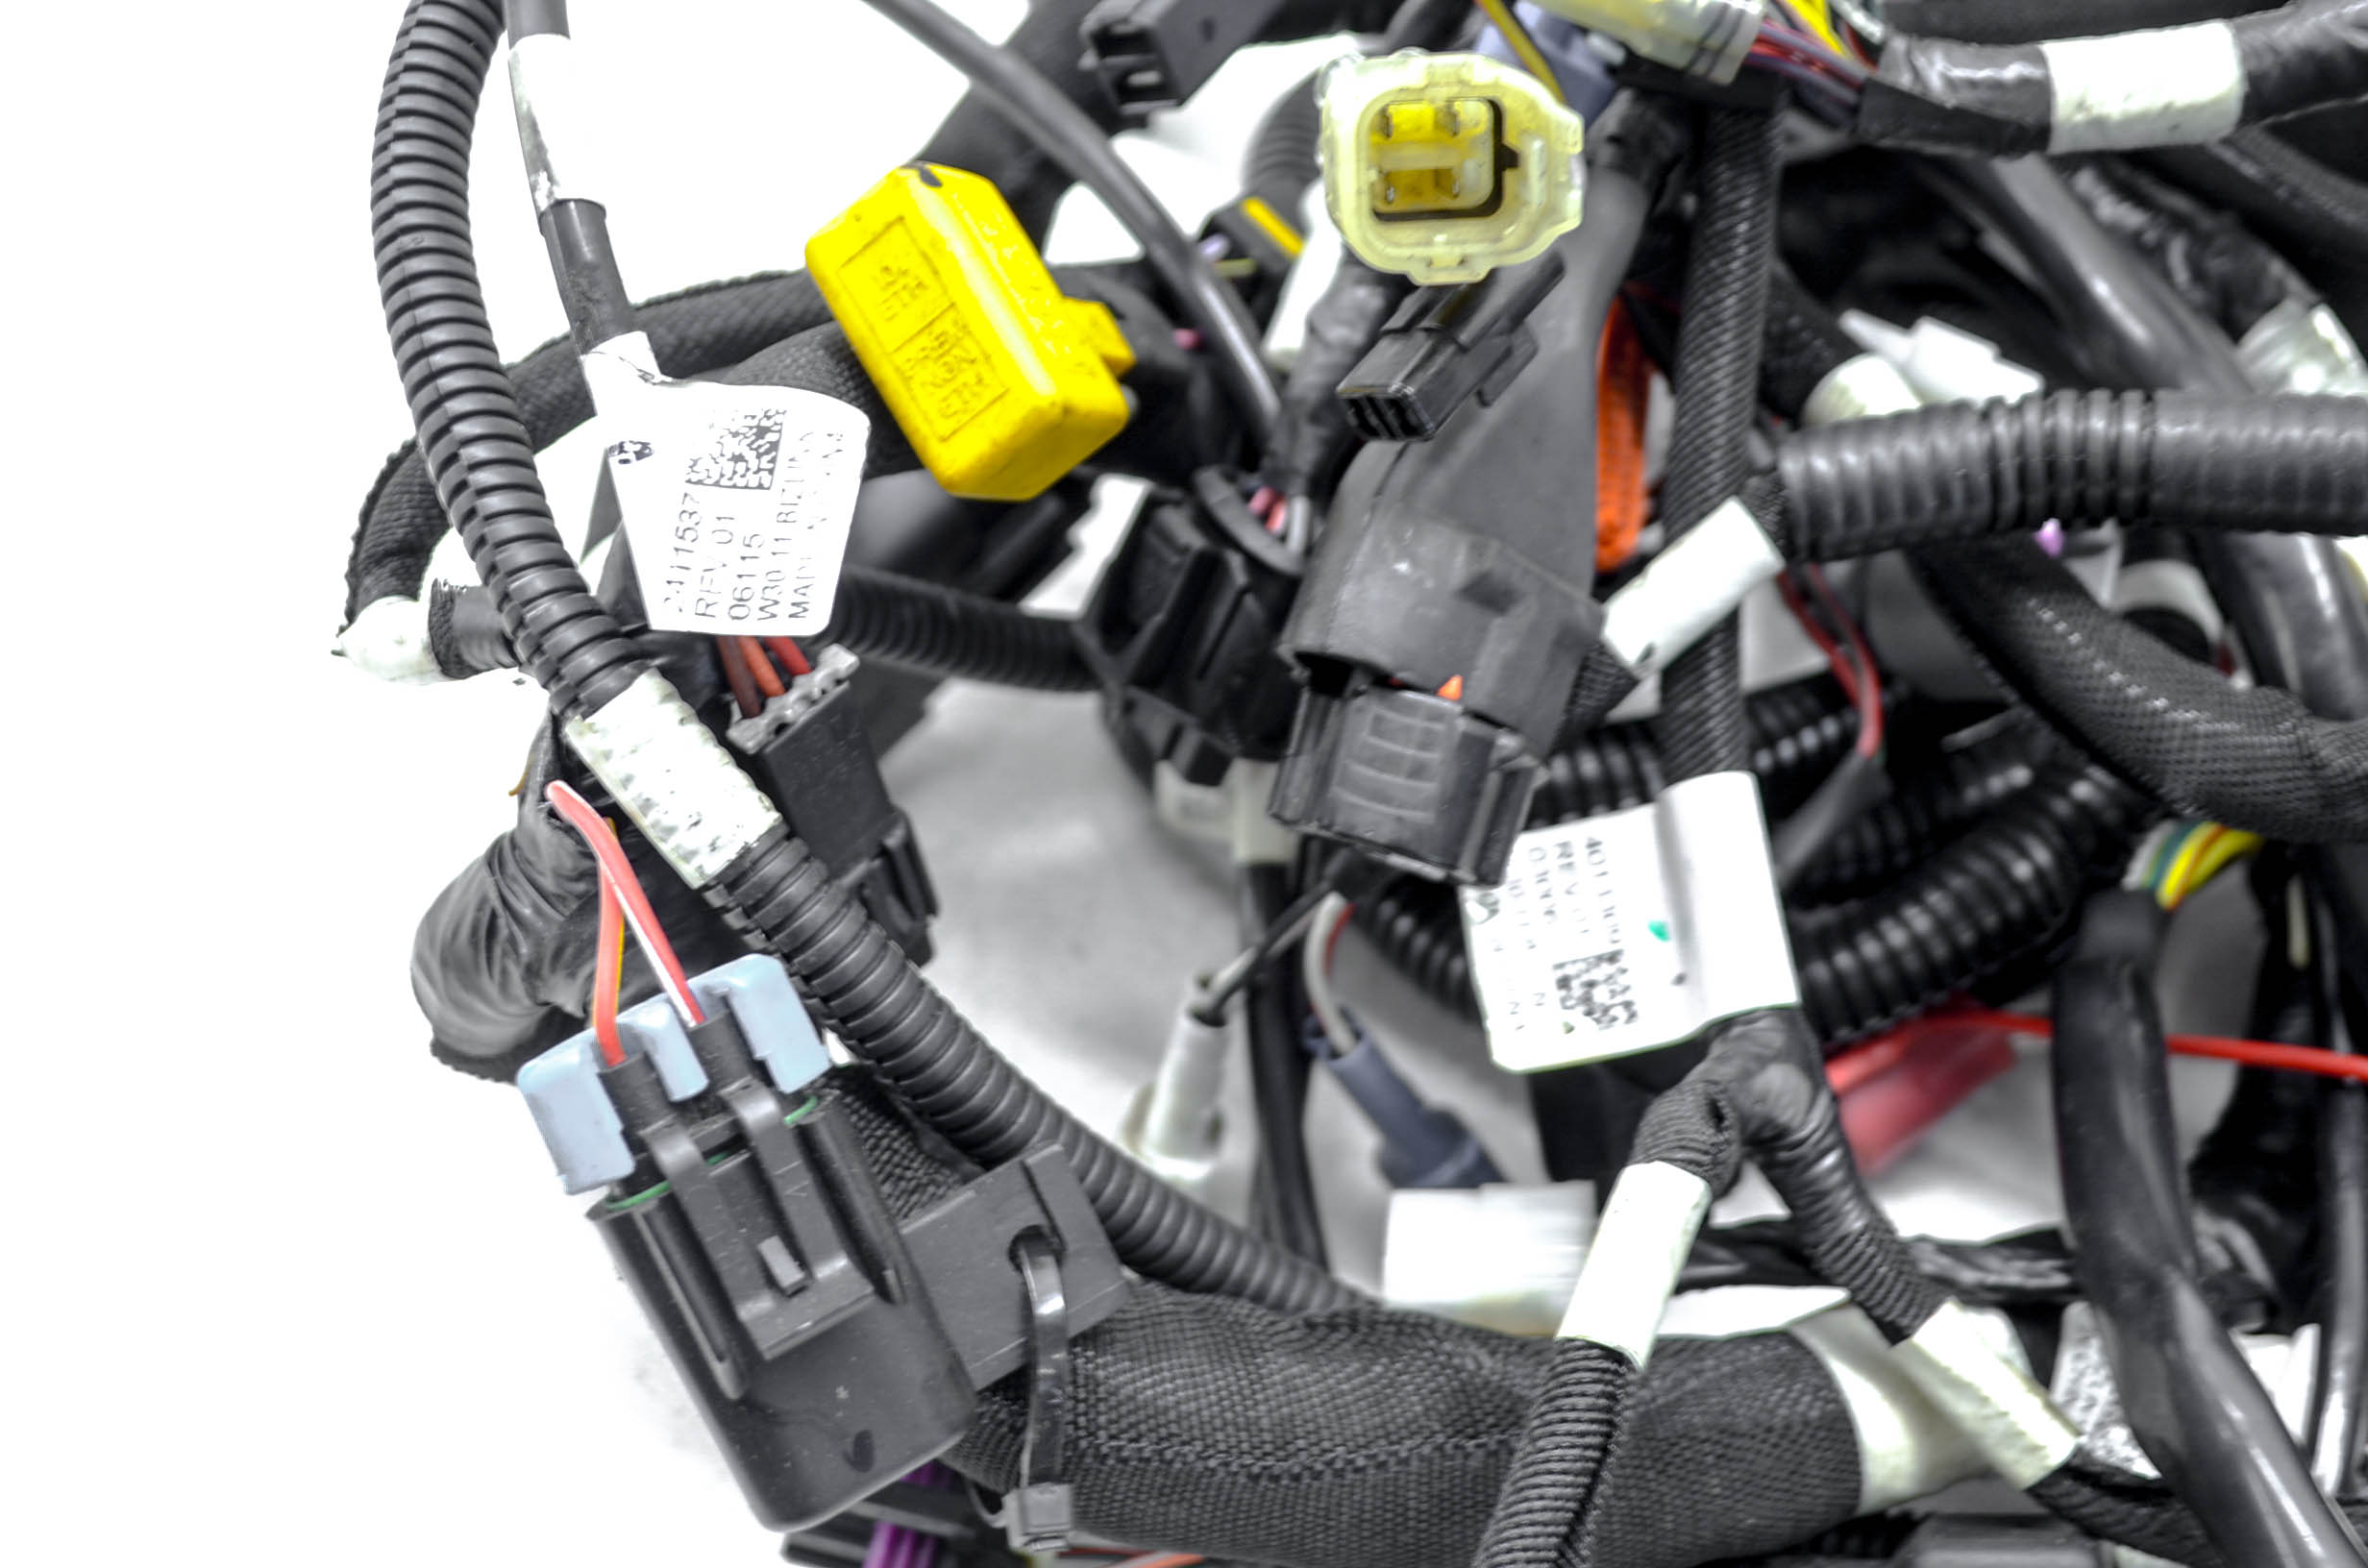 12 Polaris Switchback 600 Pro R 136 Wire Harness Electrical Wiring